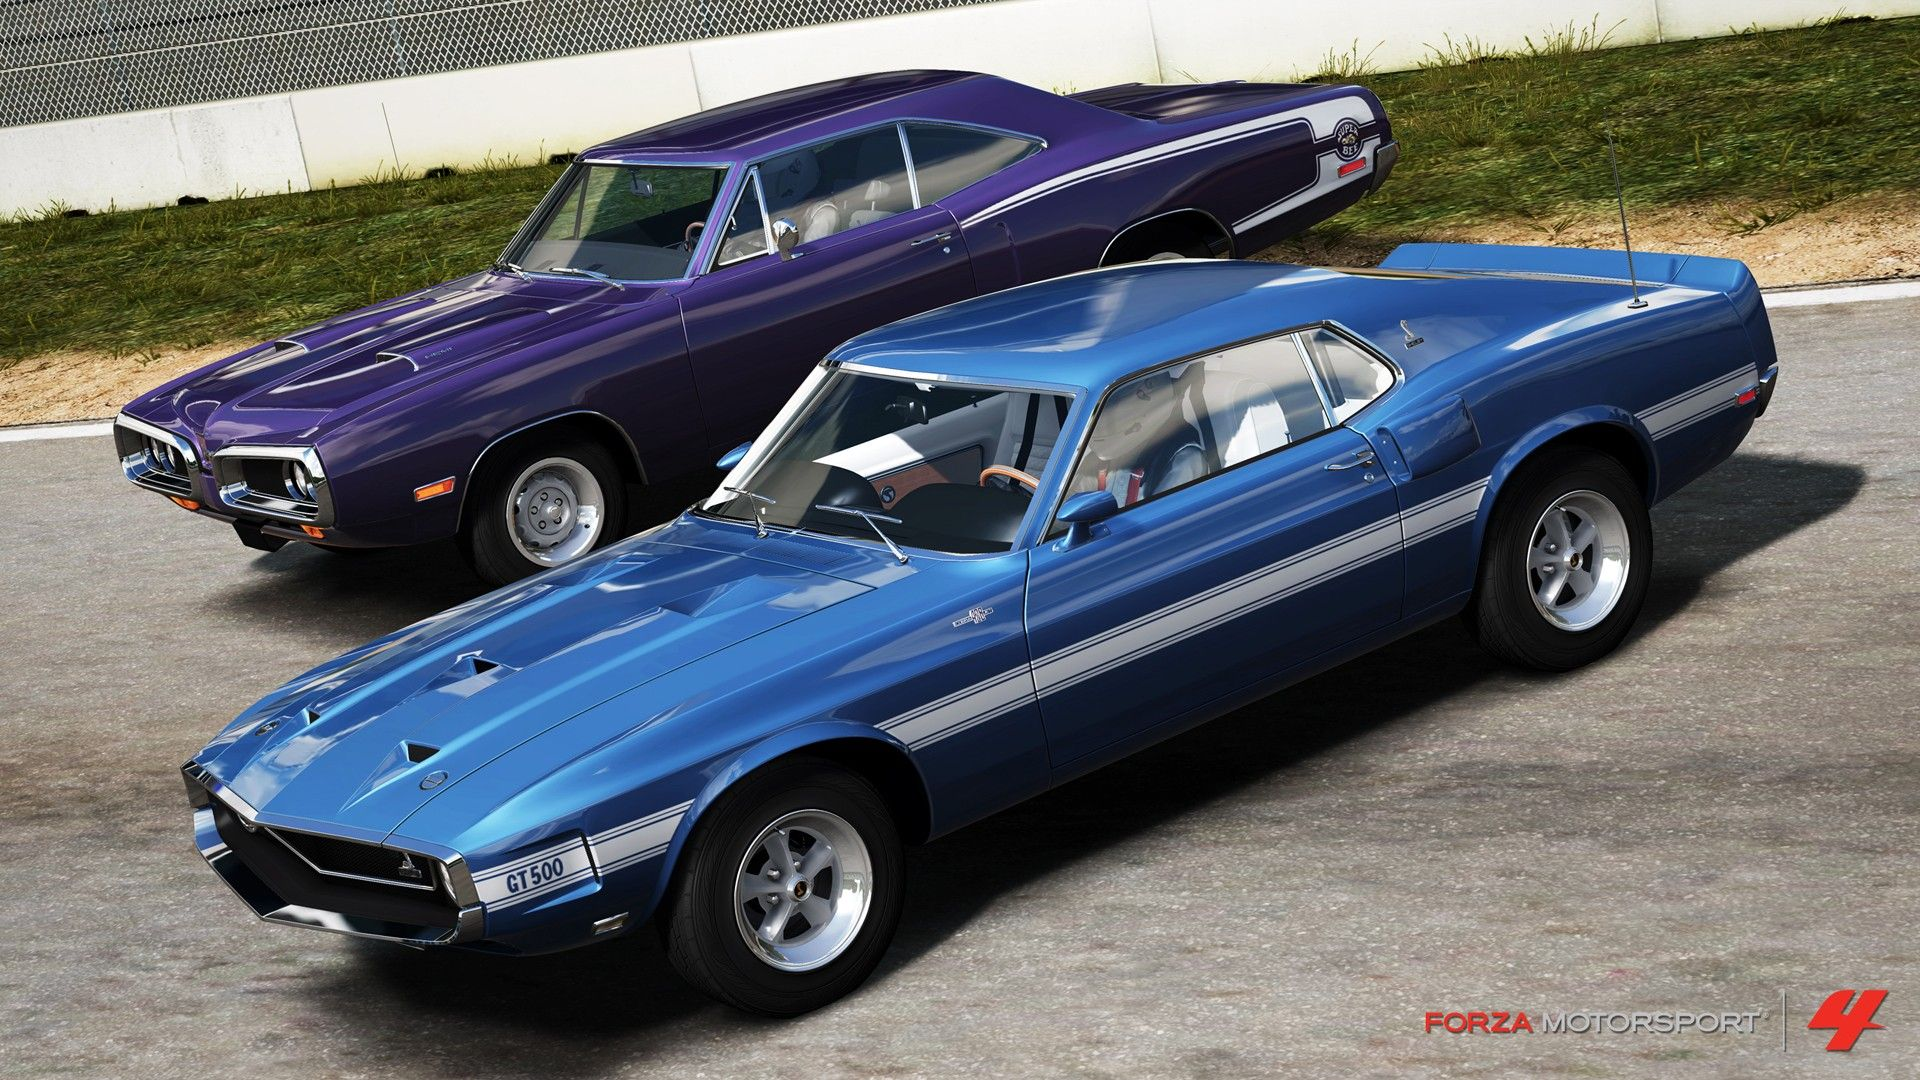 Forza Motorsport 4 Hemi Super Bee & Ford Mustang Shelby GT500 | Cars ...